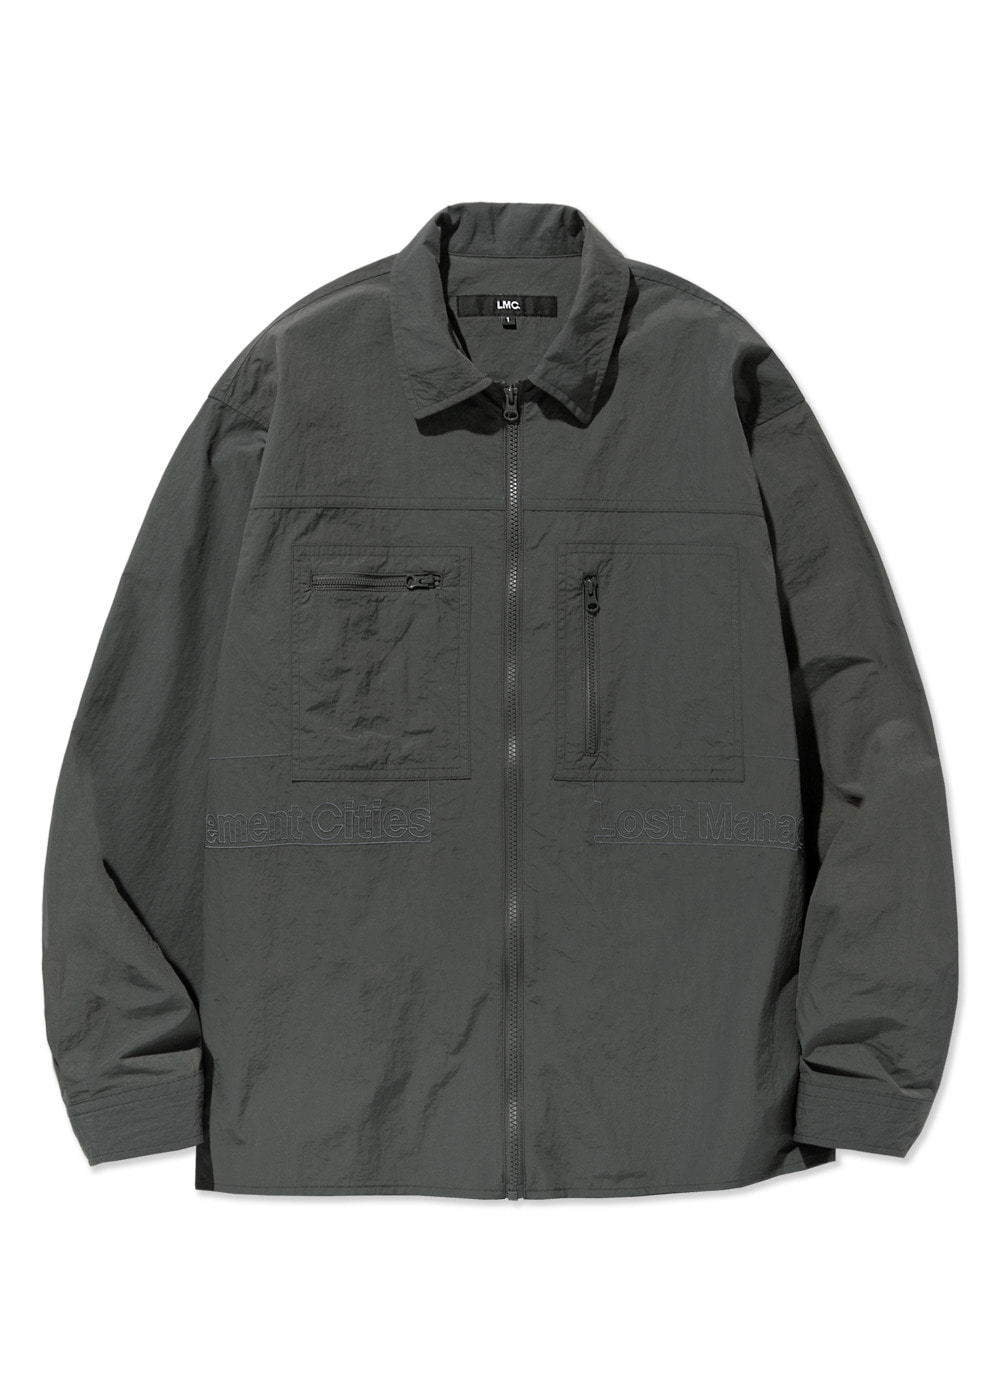 LMC FULL ZIP WORK SHIRT gray